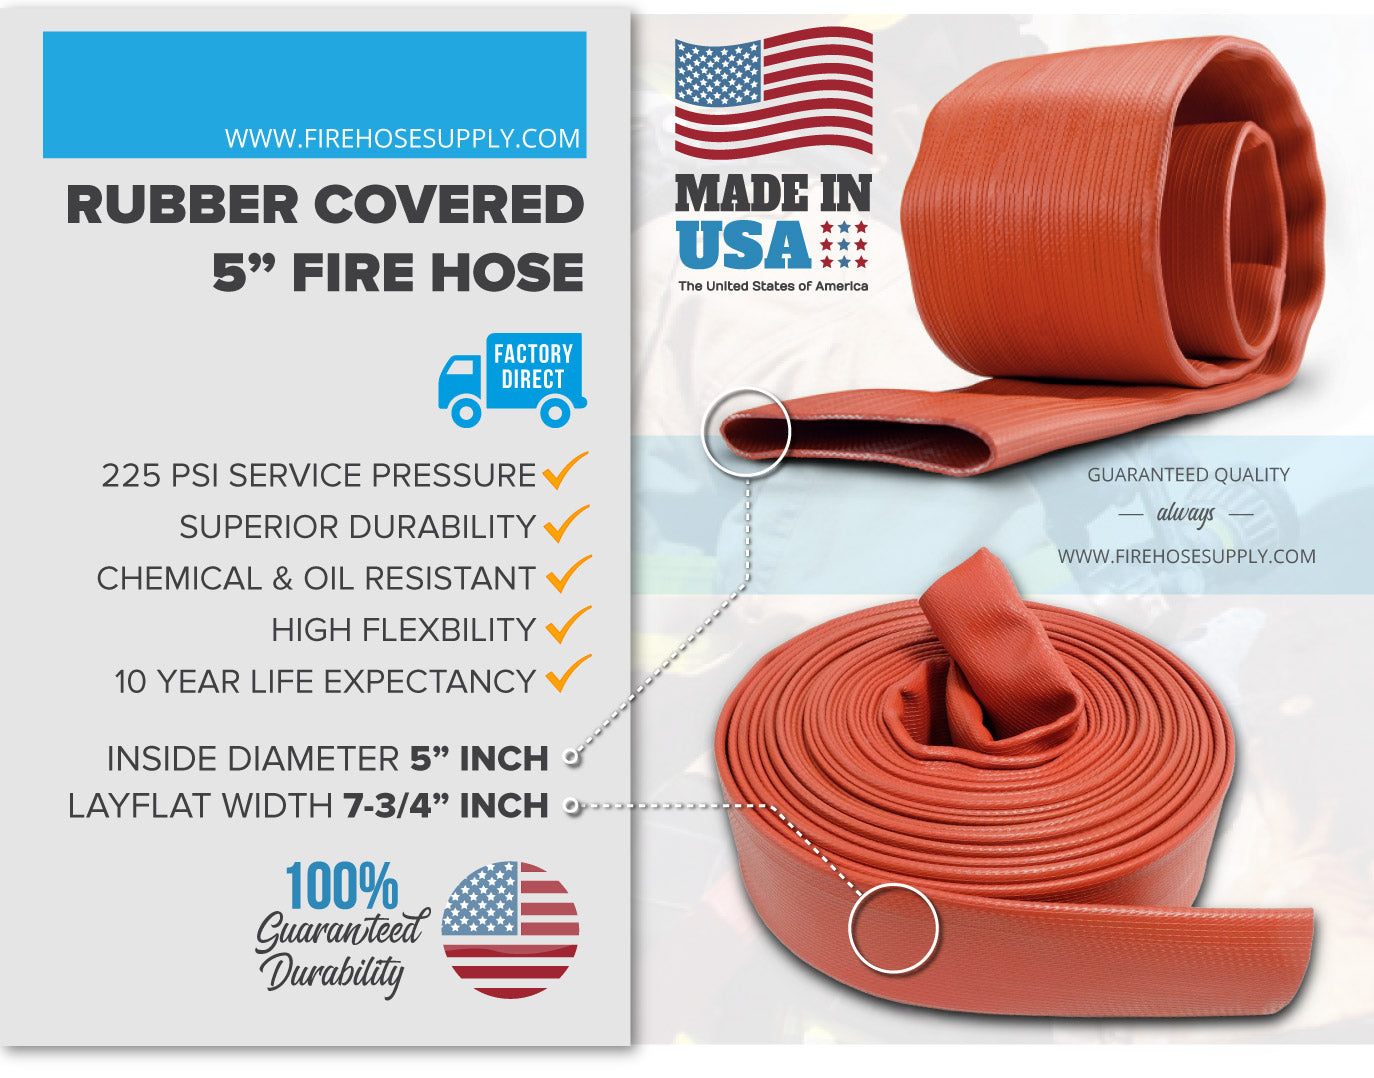 5 Inch Rubber Fire Hose Material Red No Fittings 225 PSI Large Diameter